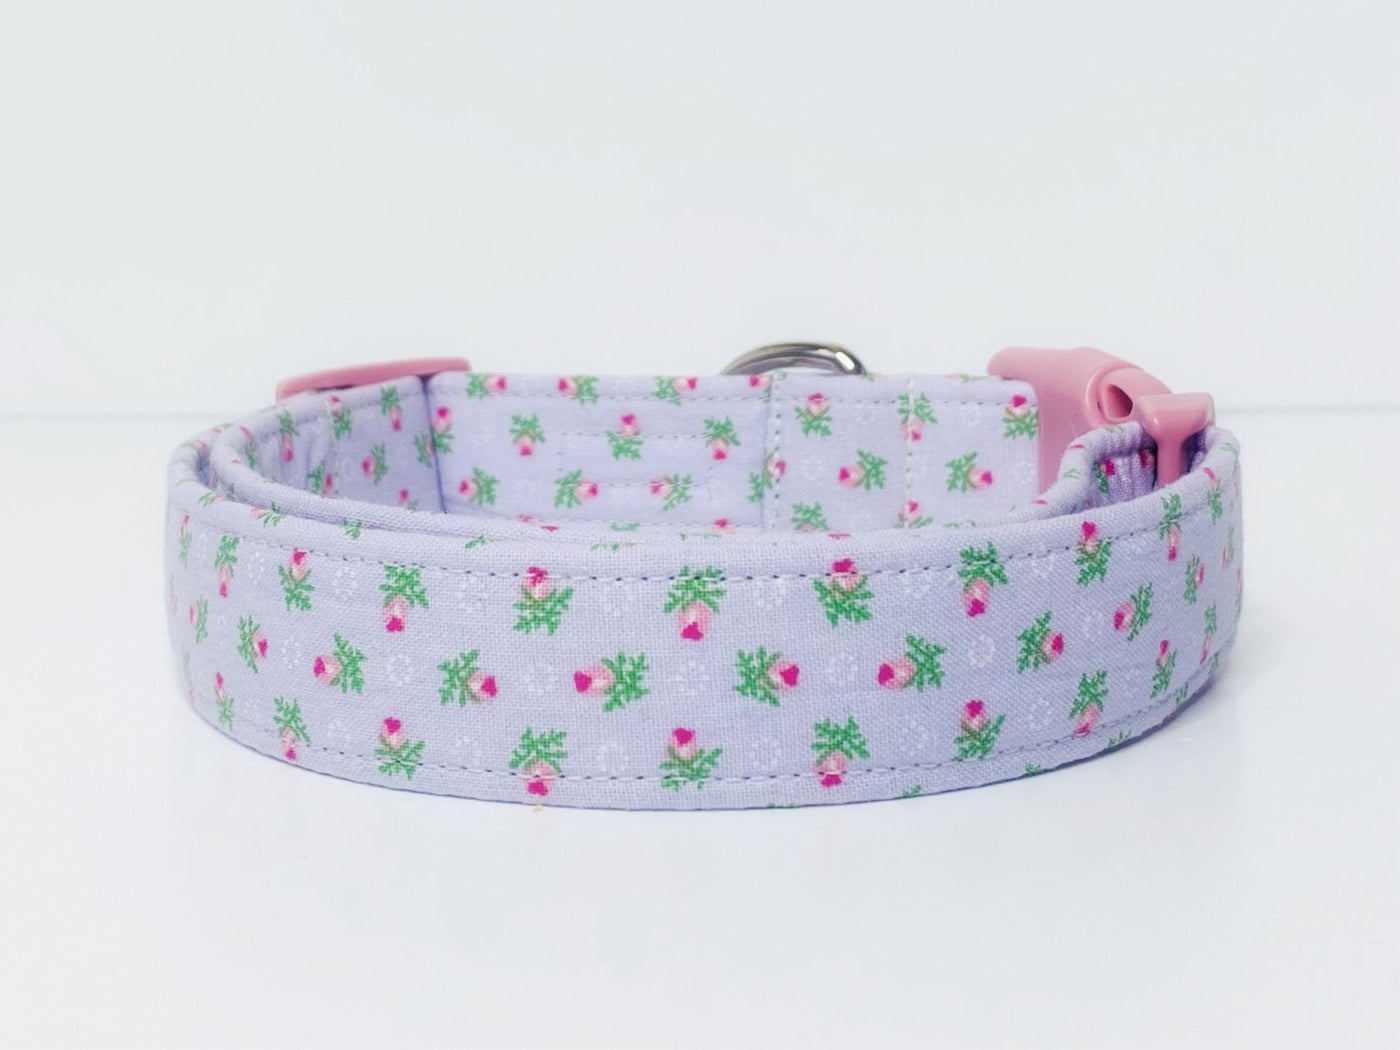 Lavender Floral Dog Collar | The Rachel Collar